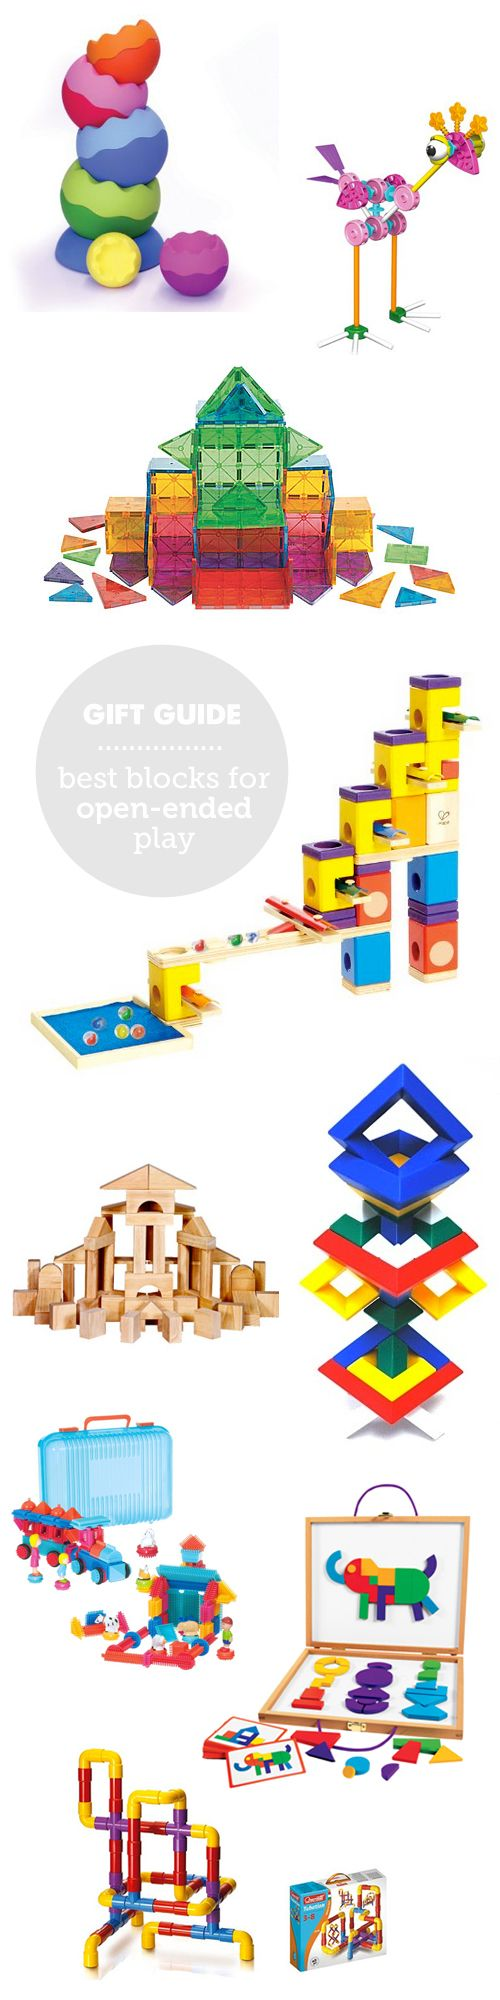 MPMK Toy Gift Guide: The Best Blocks for Open-Ened Play: Blocks are the ultimate creativity toy but they're not all created equal - these best picks for hours of open-ended play have detailed descriptions and age recommendations... Part of an AMAZINGLY huge and comprehensive set of gift guides covering lots of toys categories- each with great descriptions and age recommendations!